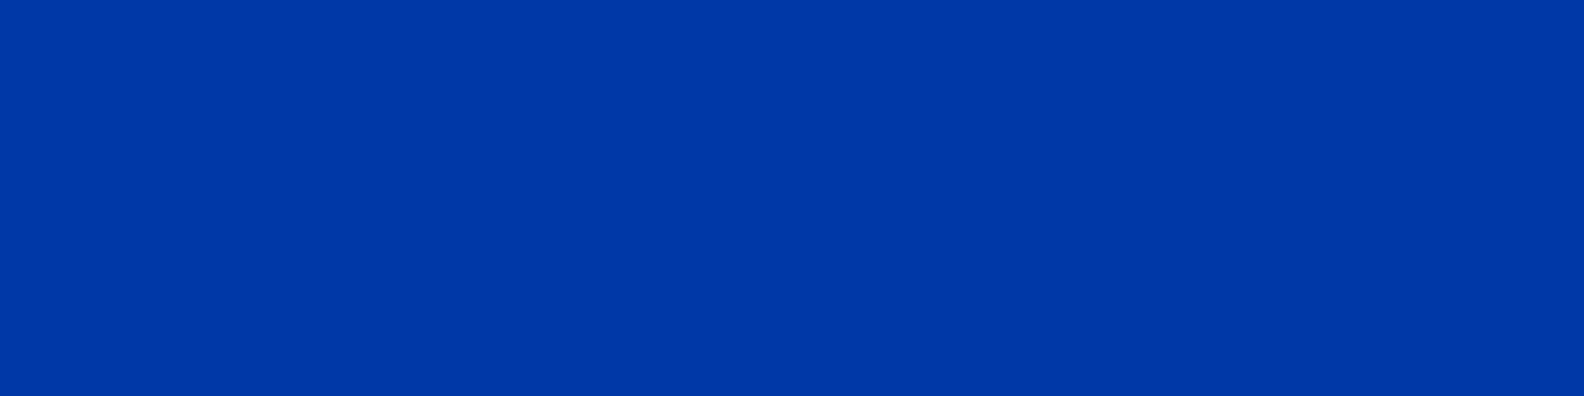 1584x396 Royal Azure Solid Color Background